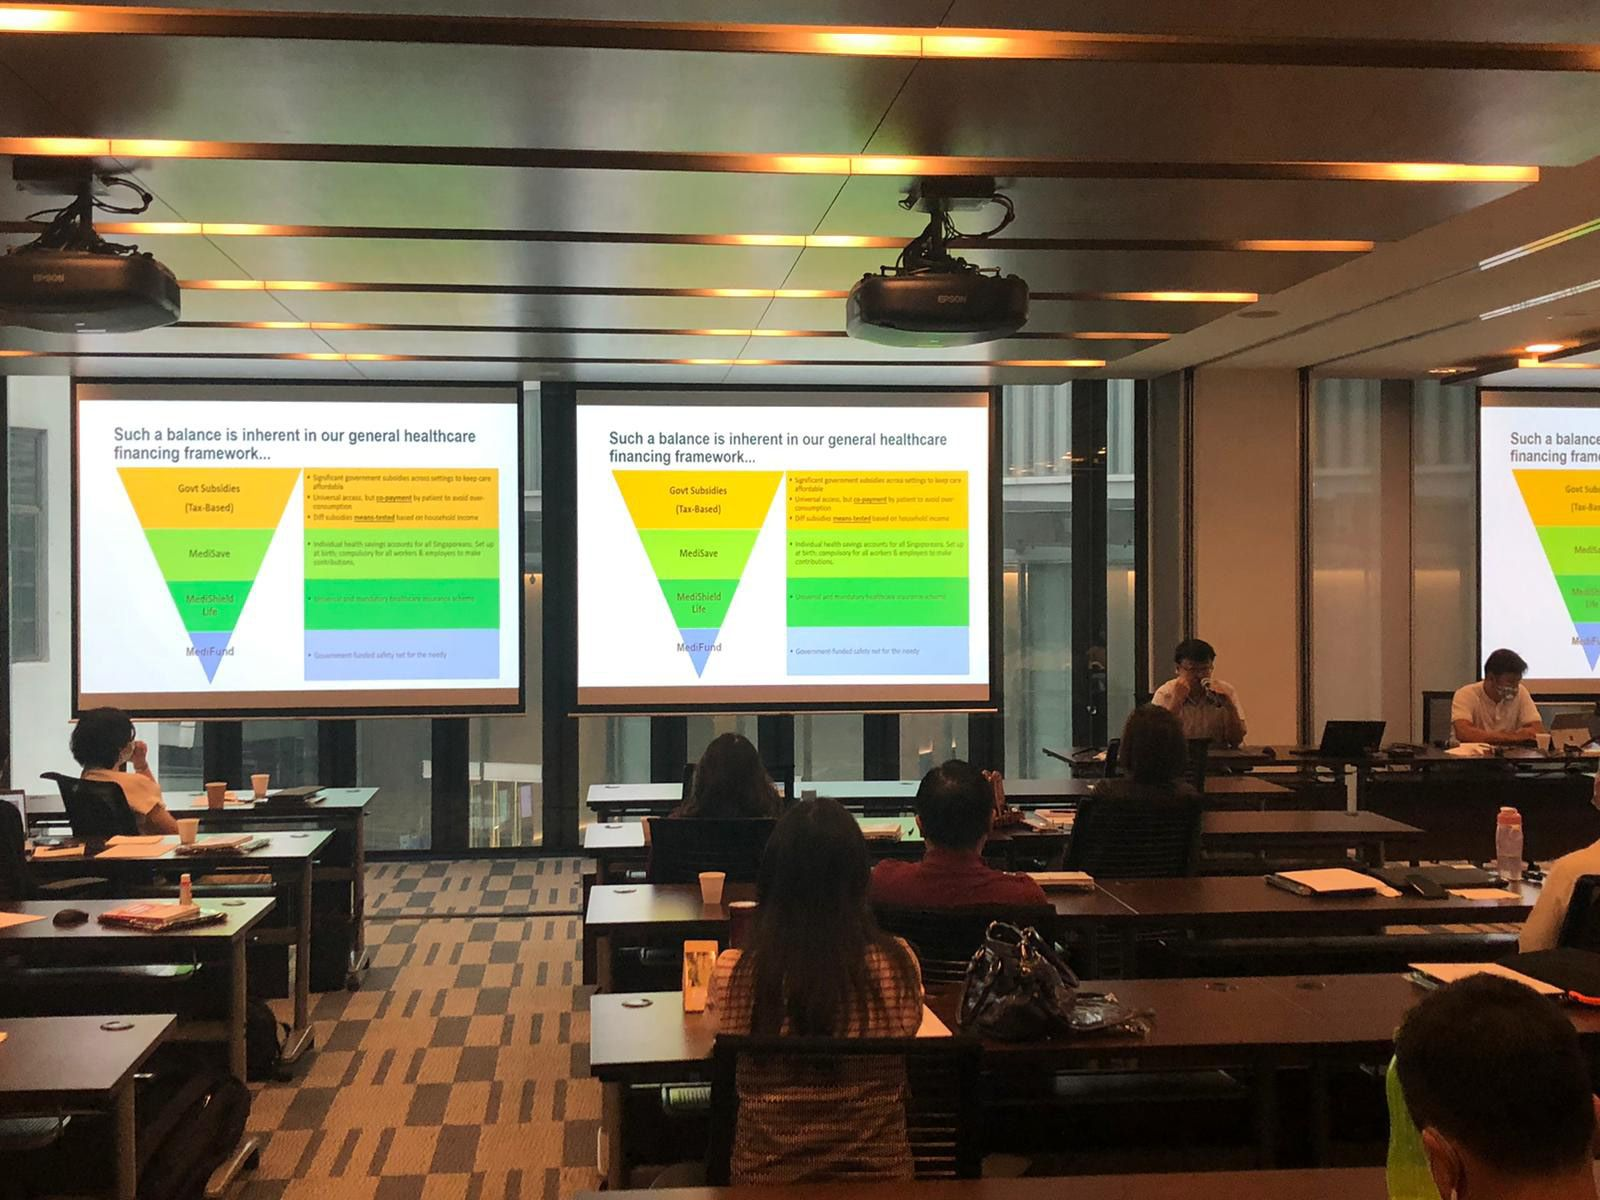 AIC organises an annual programme IGNITE Module 2 for new Community Care leaders in Singapore to learn about grants.